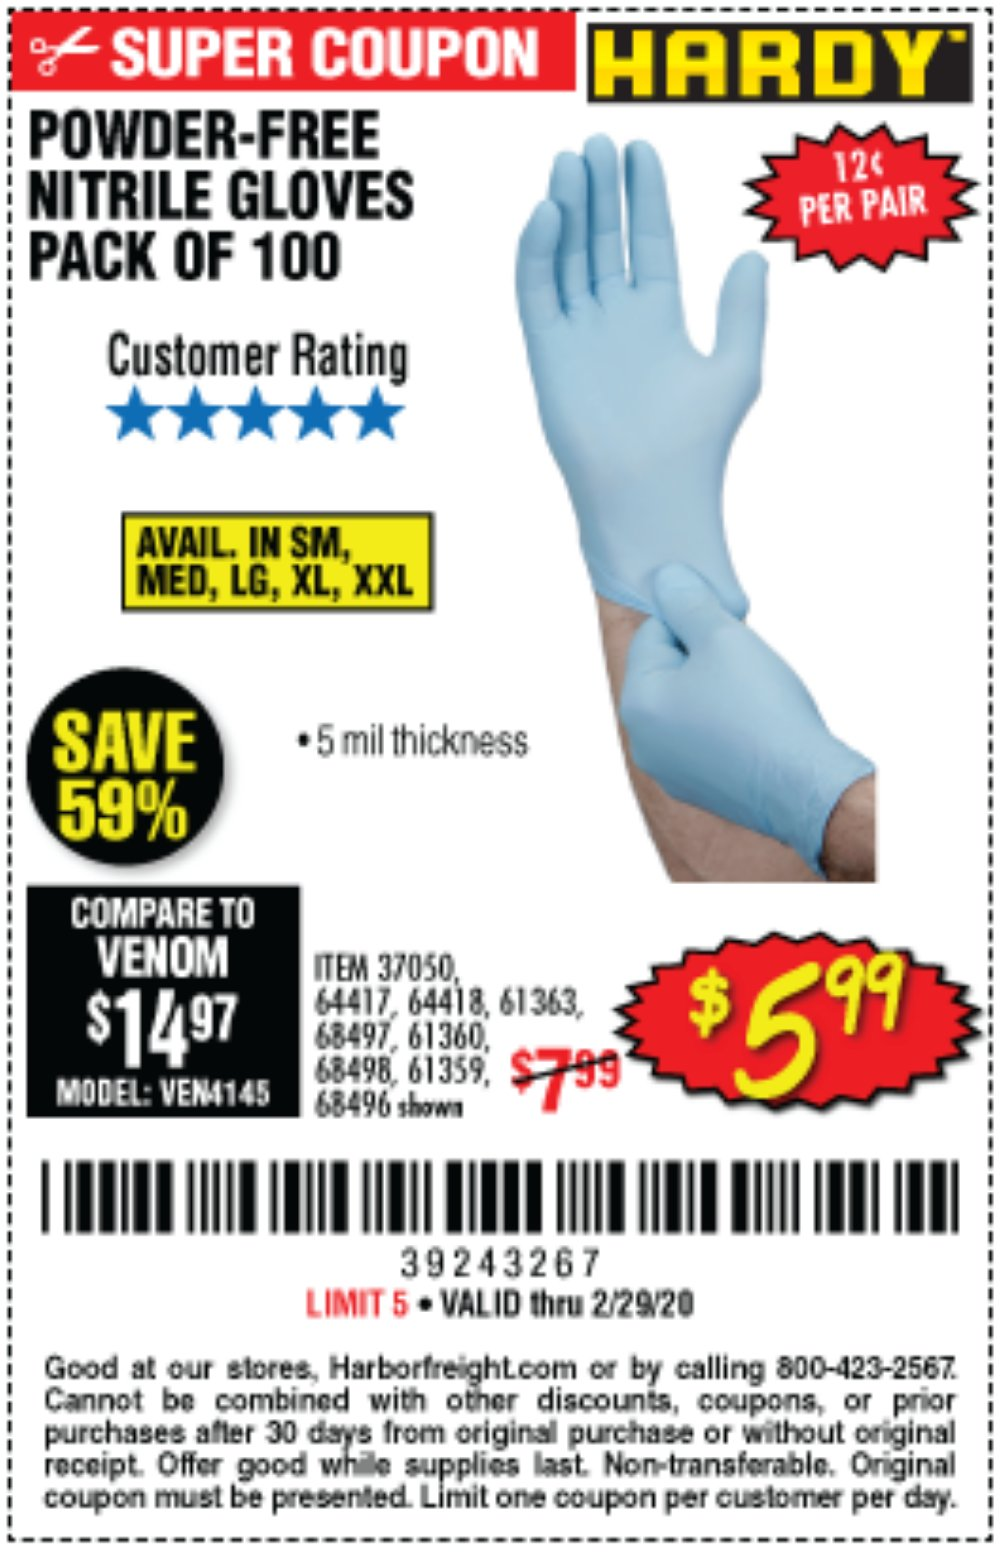 Harbor Freight Coupon, HF Coupons - Powder-free Nitrile Gloves Pack Of 100